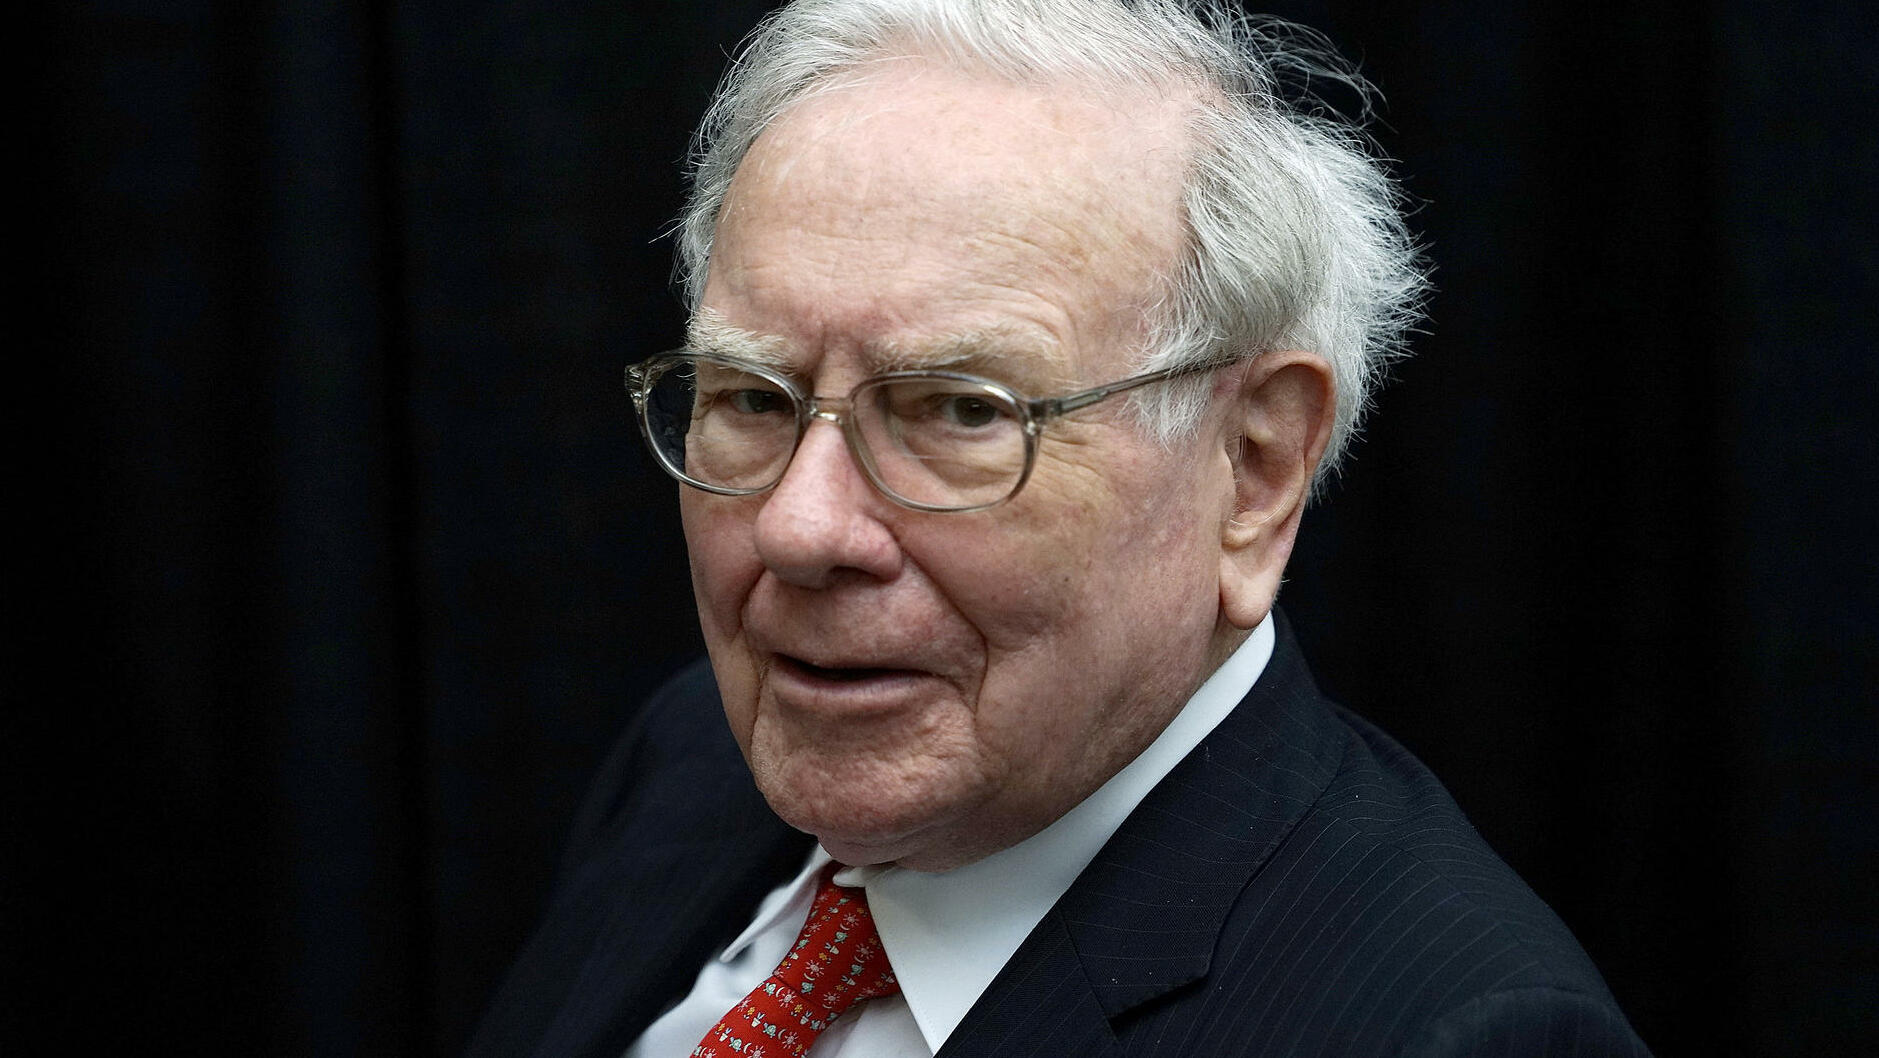 Warren Buffett Quelle: REUTERS